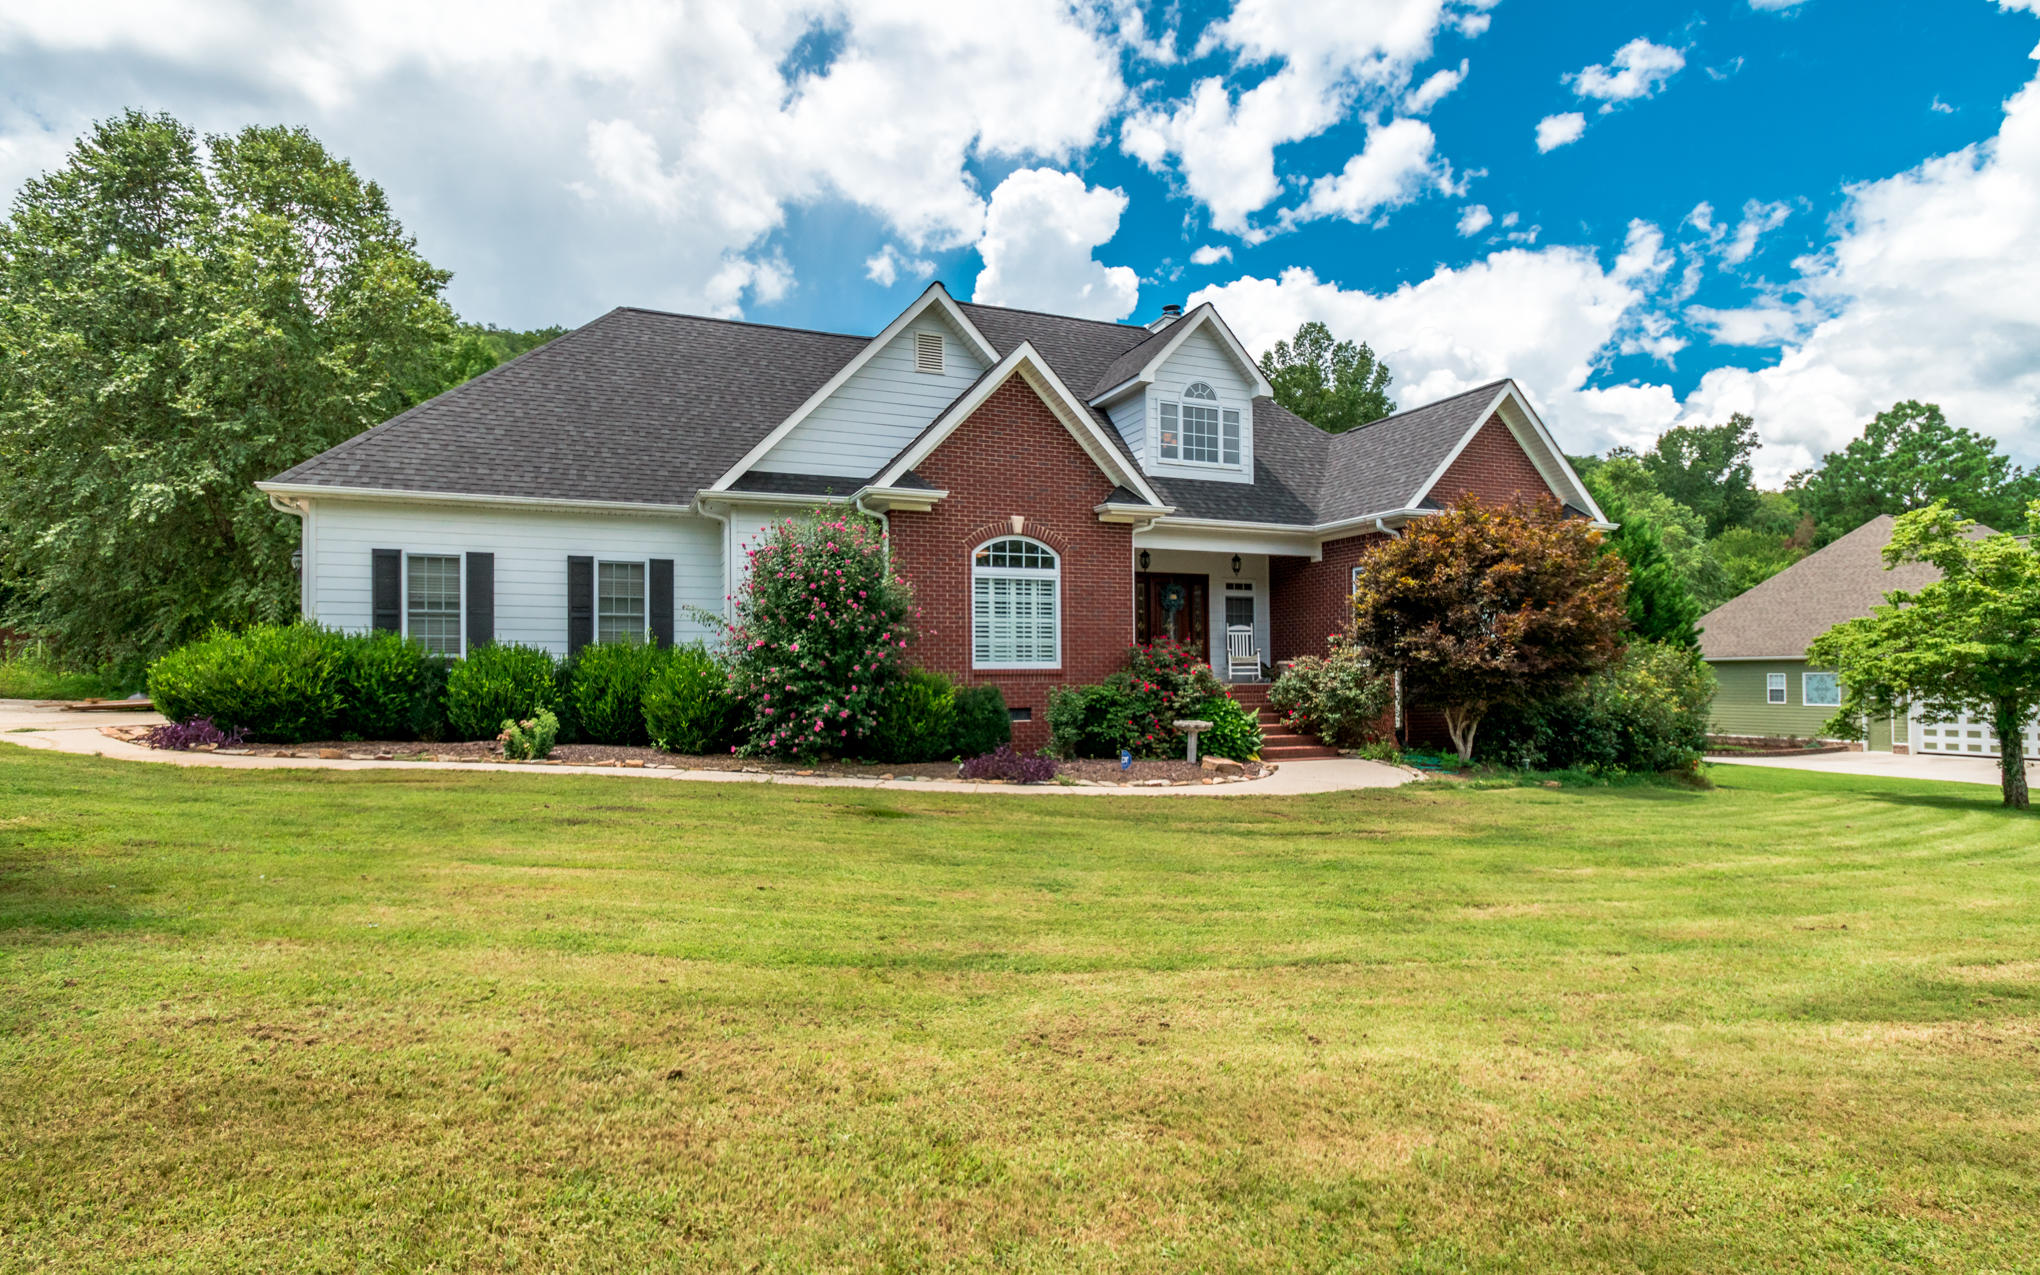 145 Payton Dr, South Pittsburg, TN 37380